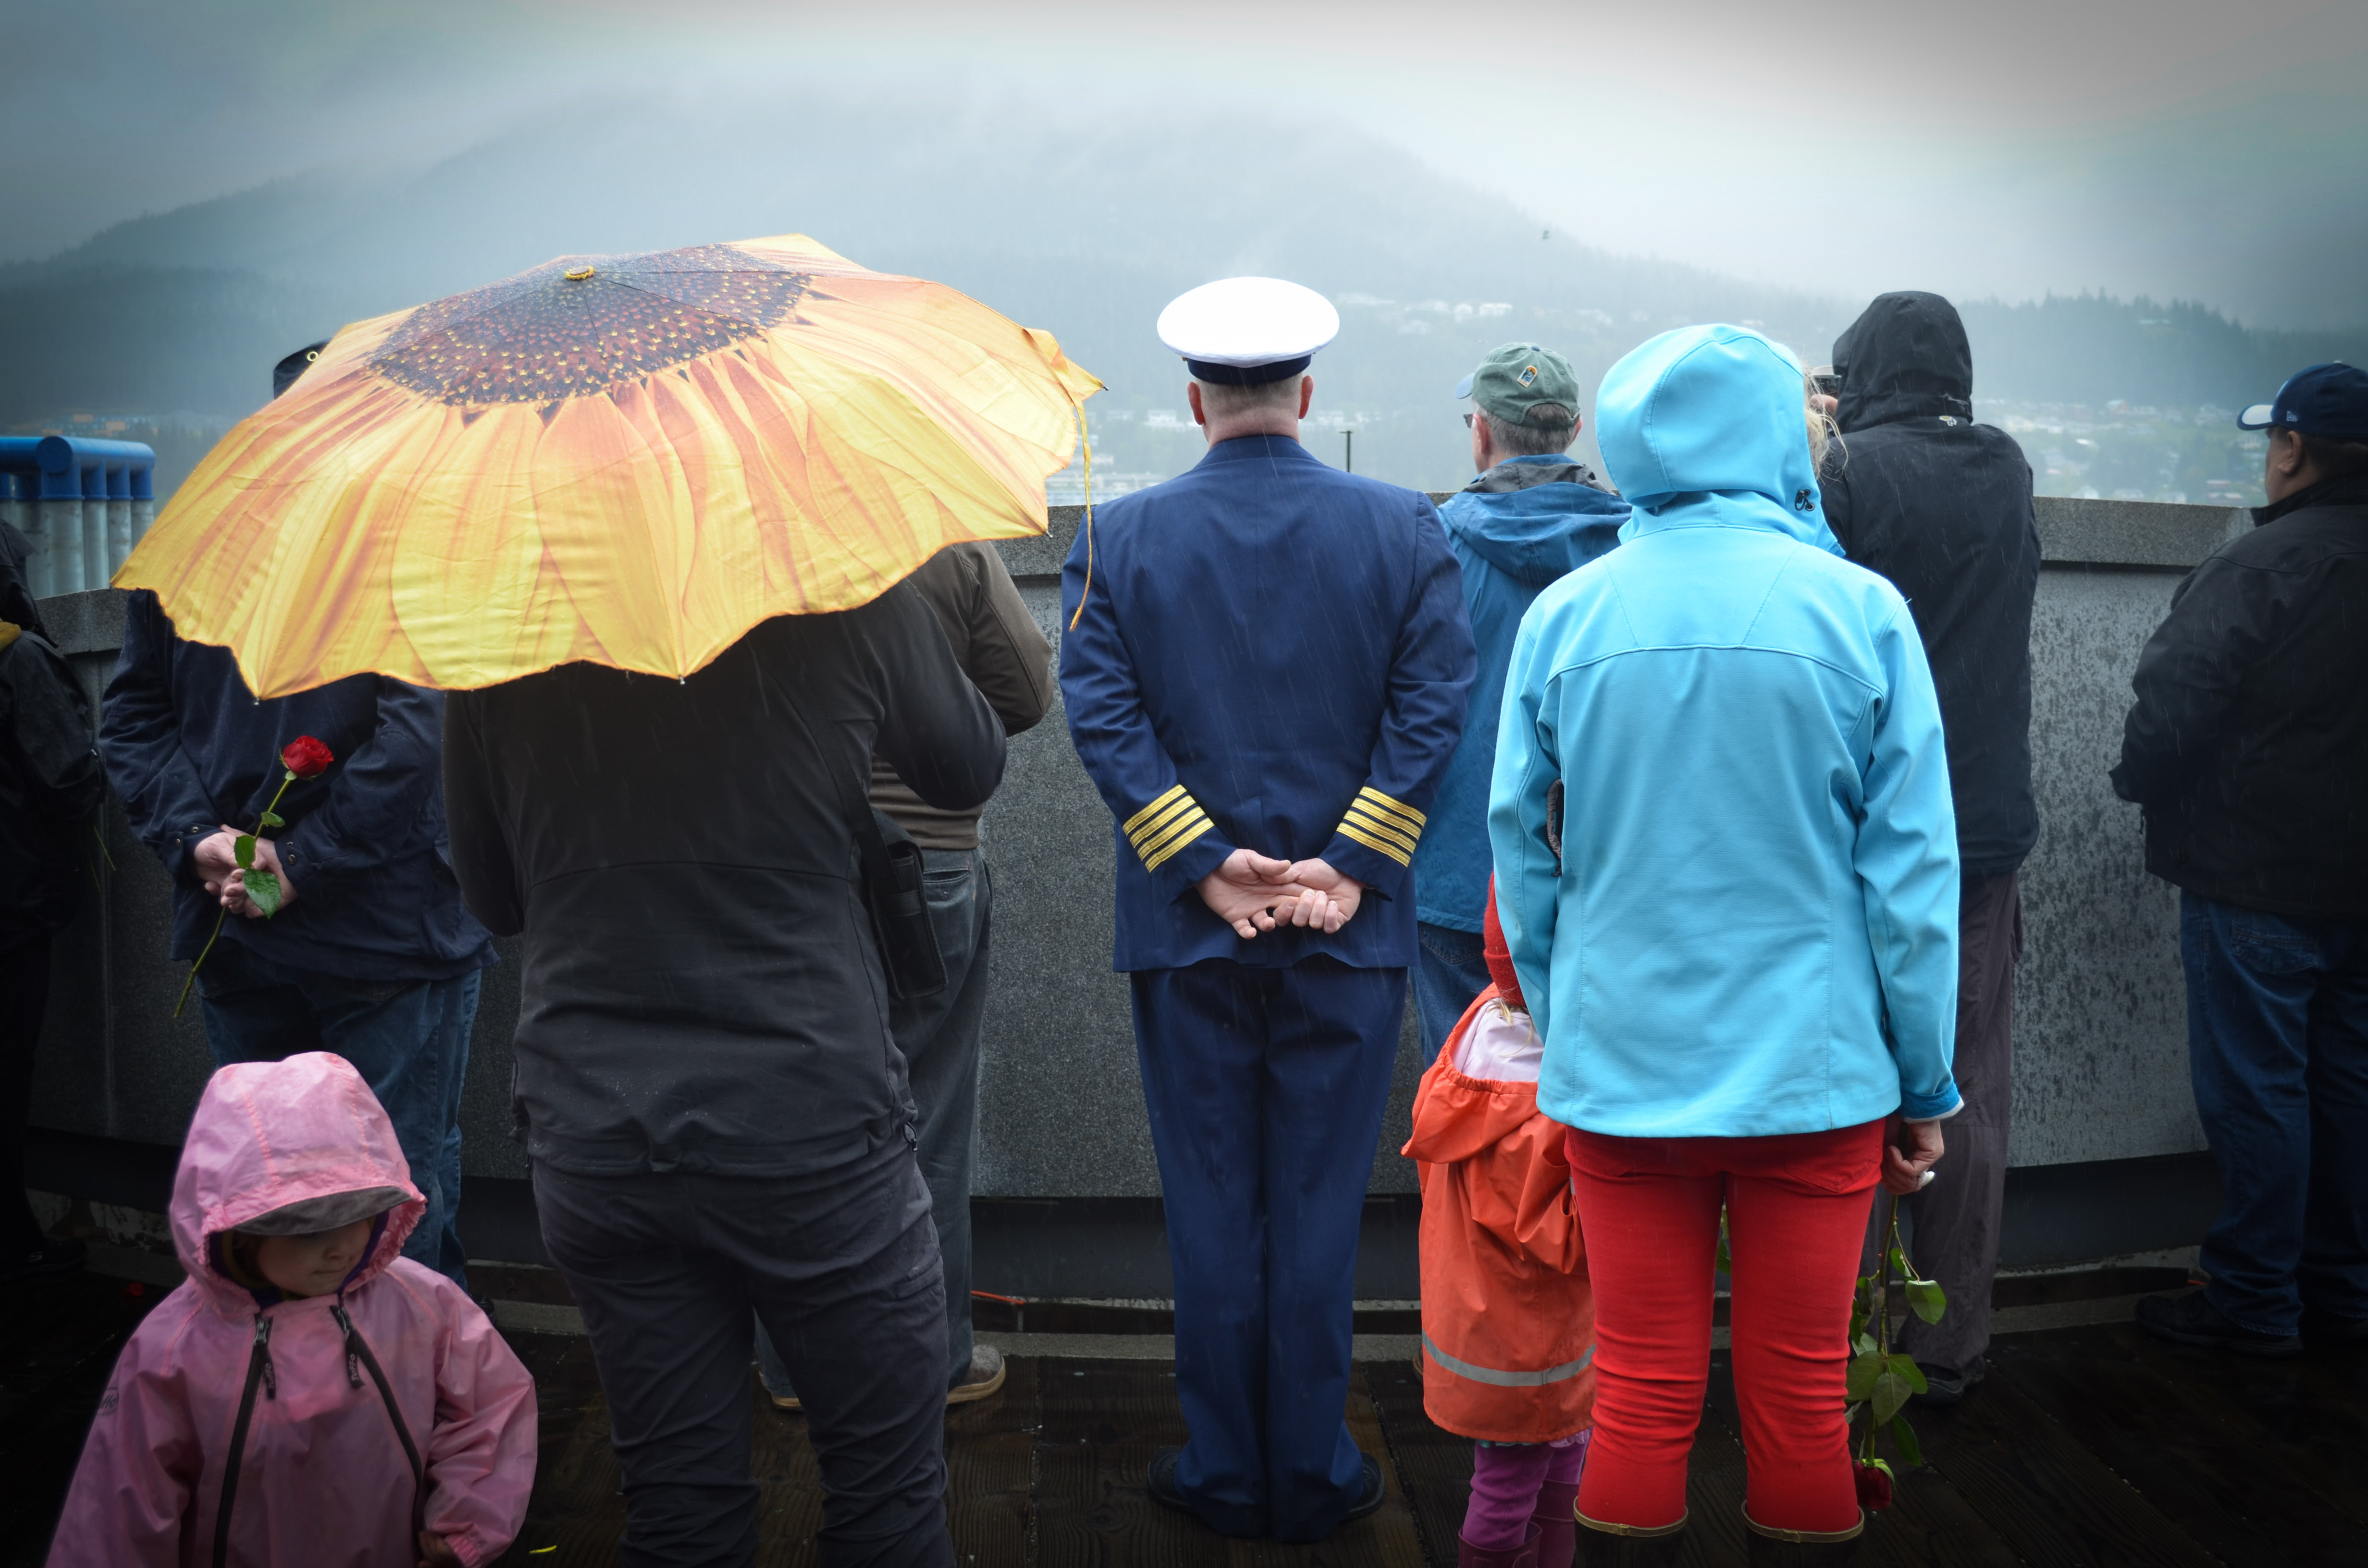 More than a hundred people gathered May 7, 2016 for the Blessing of the Fleet in Juneau. (Photo by Jennifer Canfield, KTOO - Juneau)